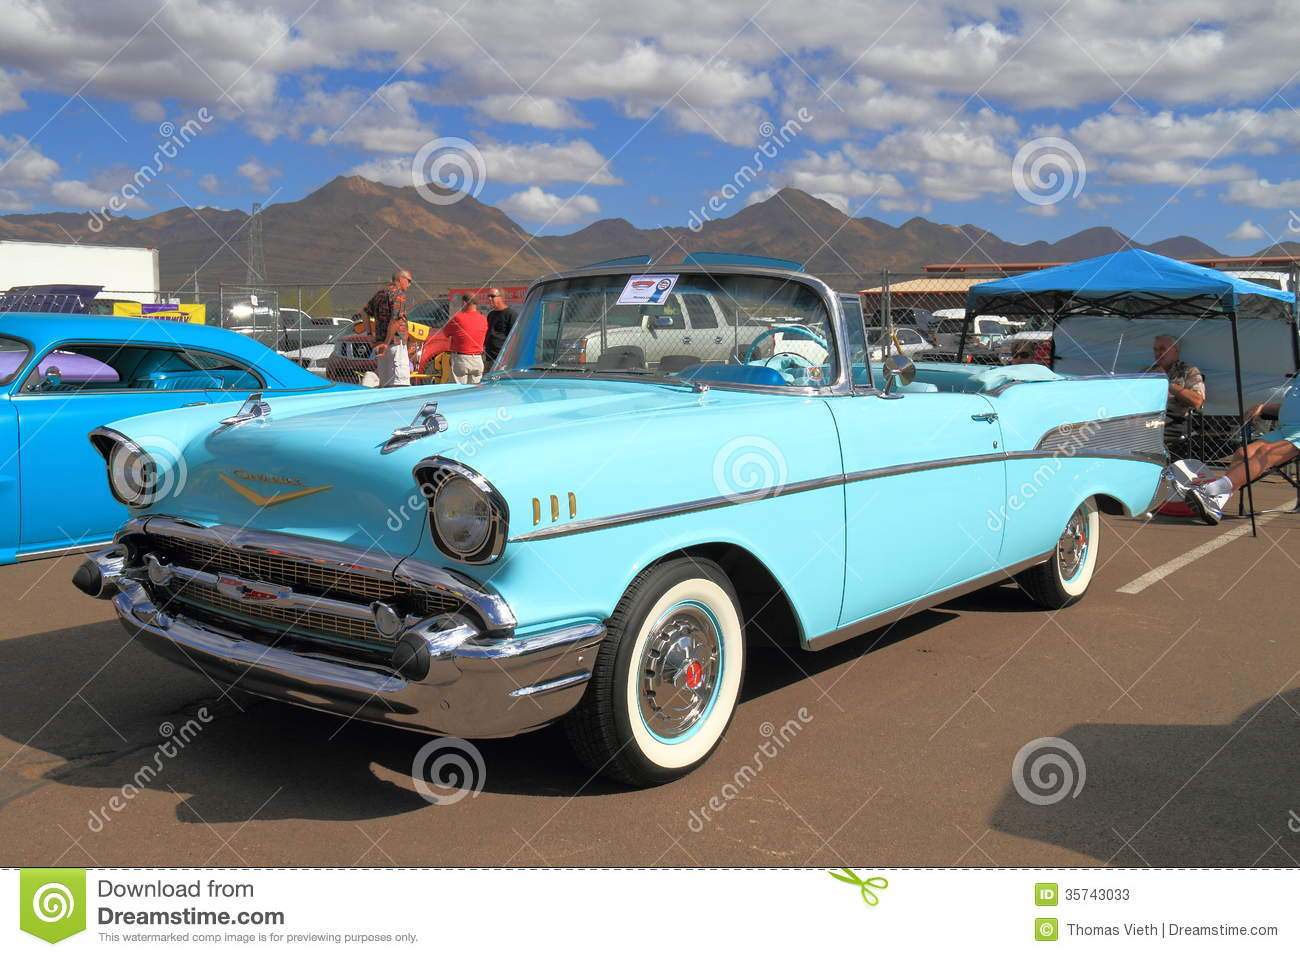 Classic Car: 1957 Chevrolet Bel Air, 1957 Editorial Stock Photo ...